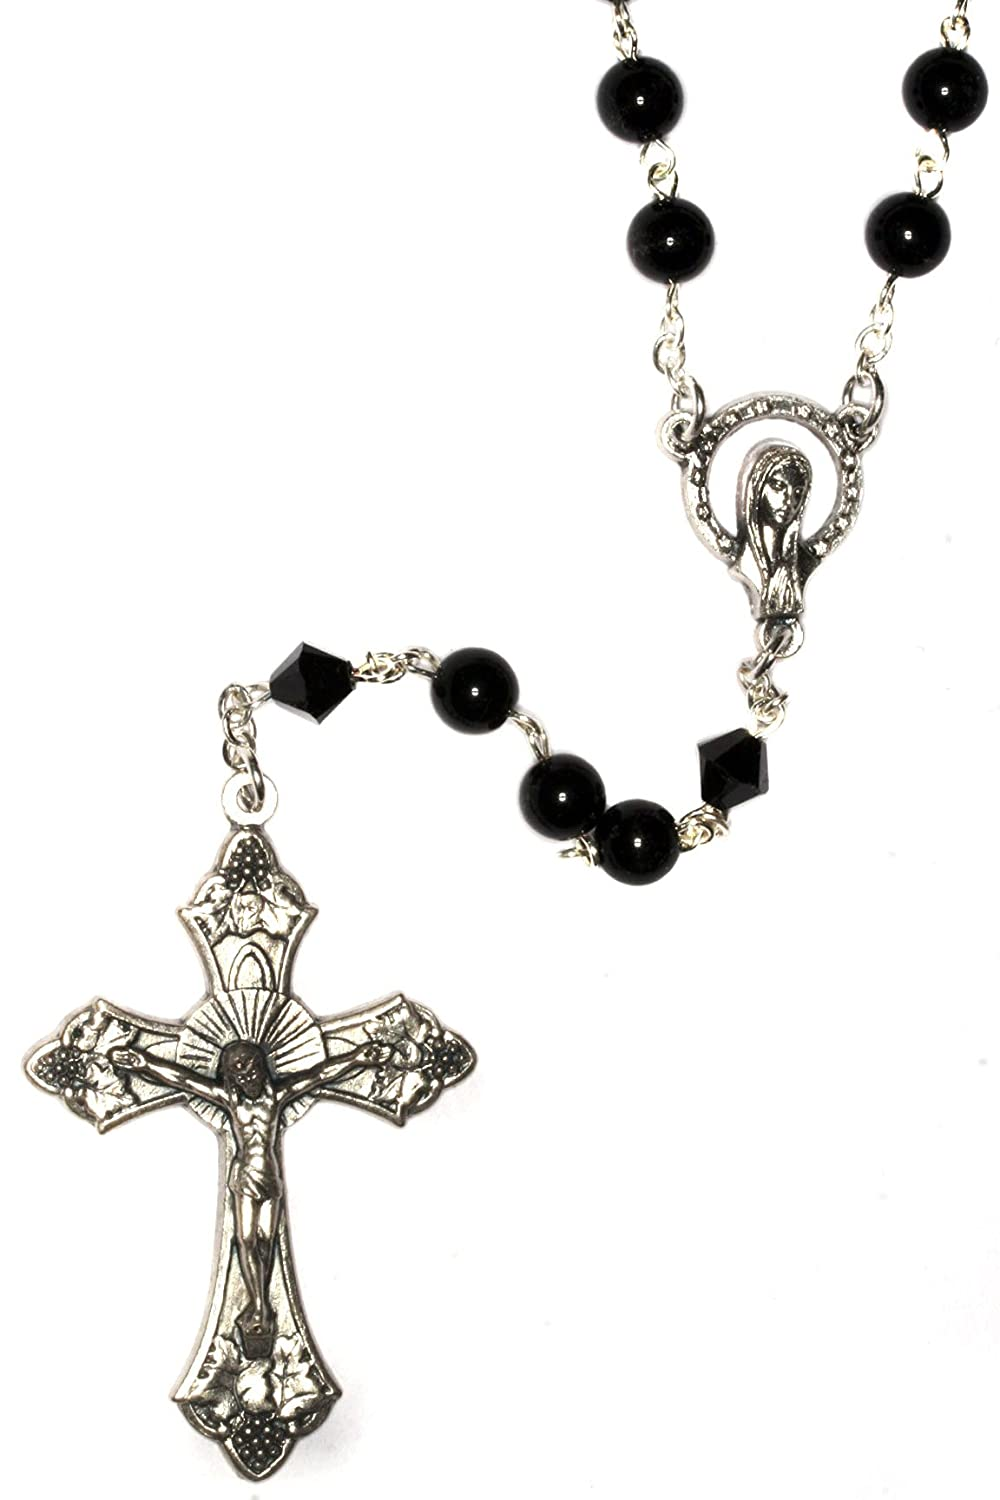 Silver Rosary made with Black Obsidian Gemstones and Swarovski Crystal elements